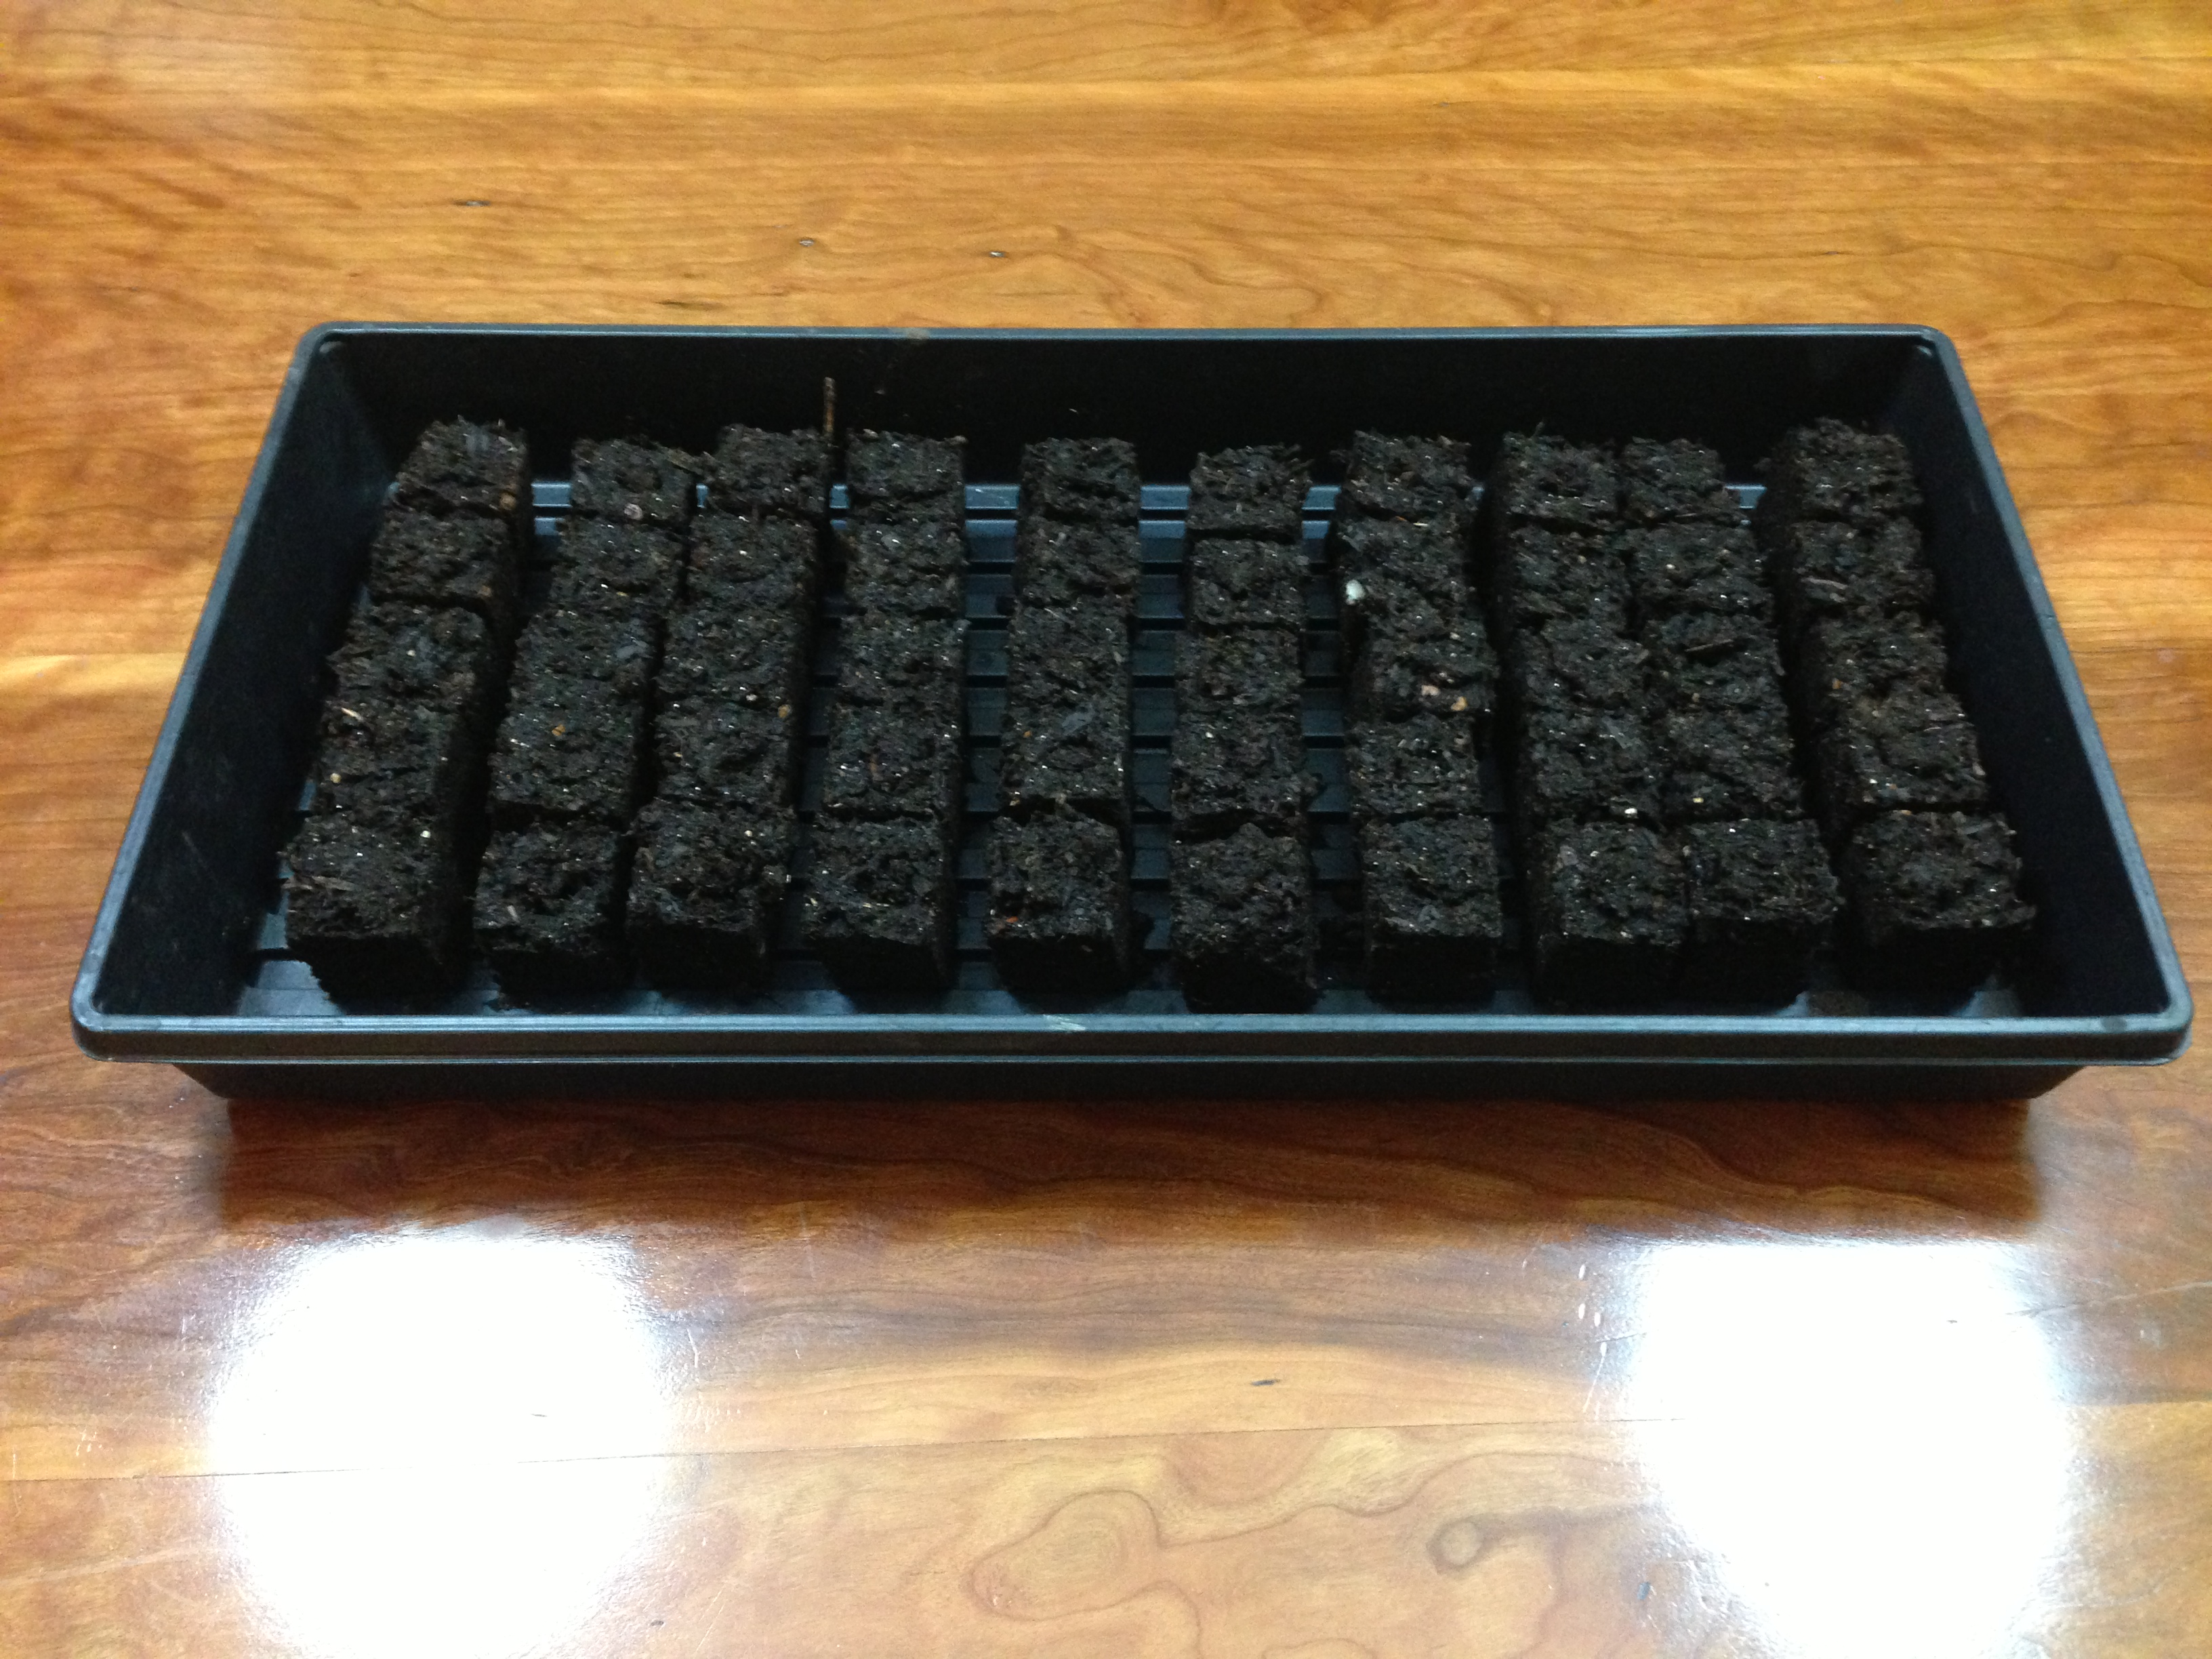 A tray of fall seedlings.